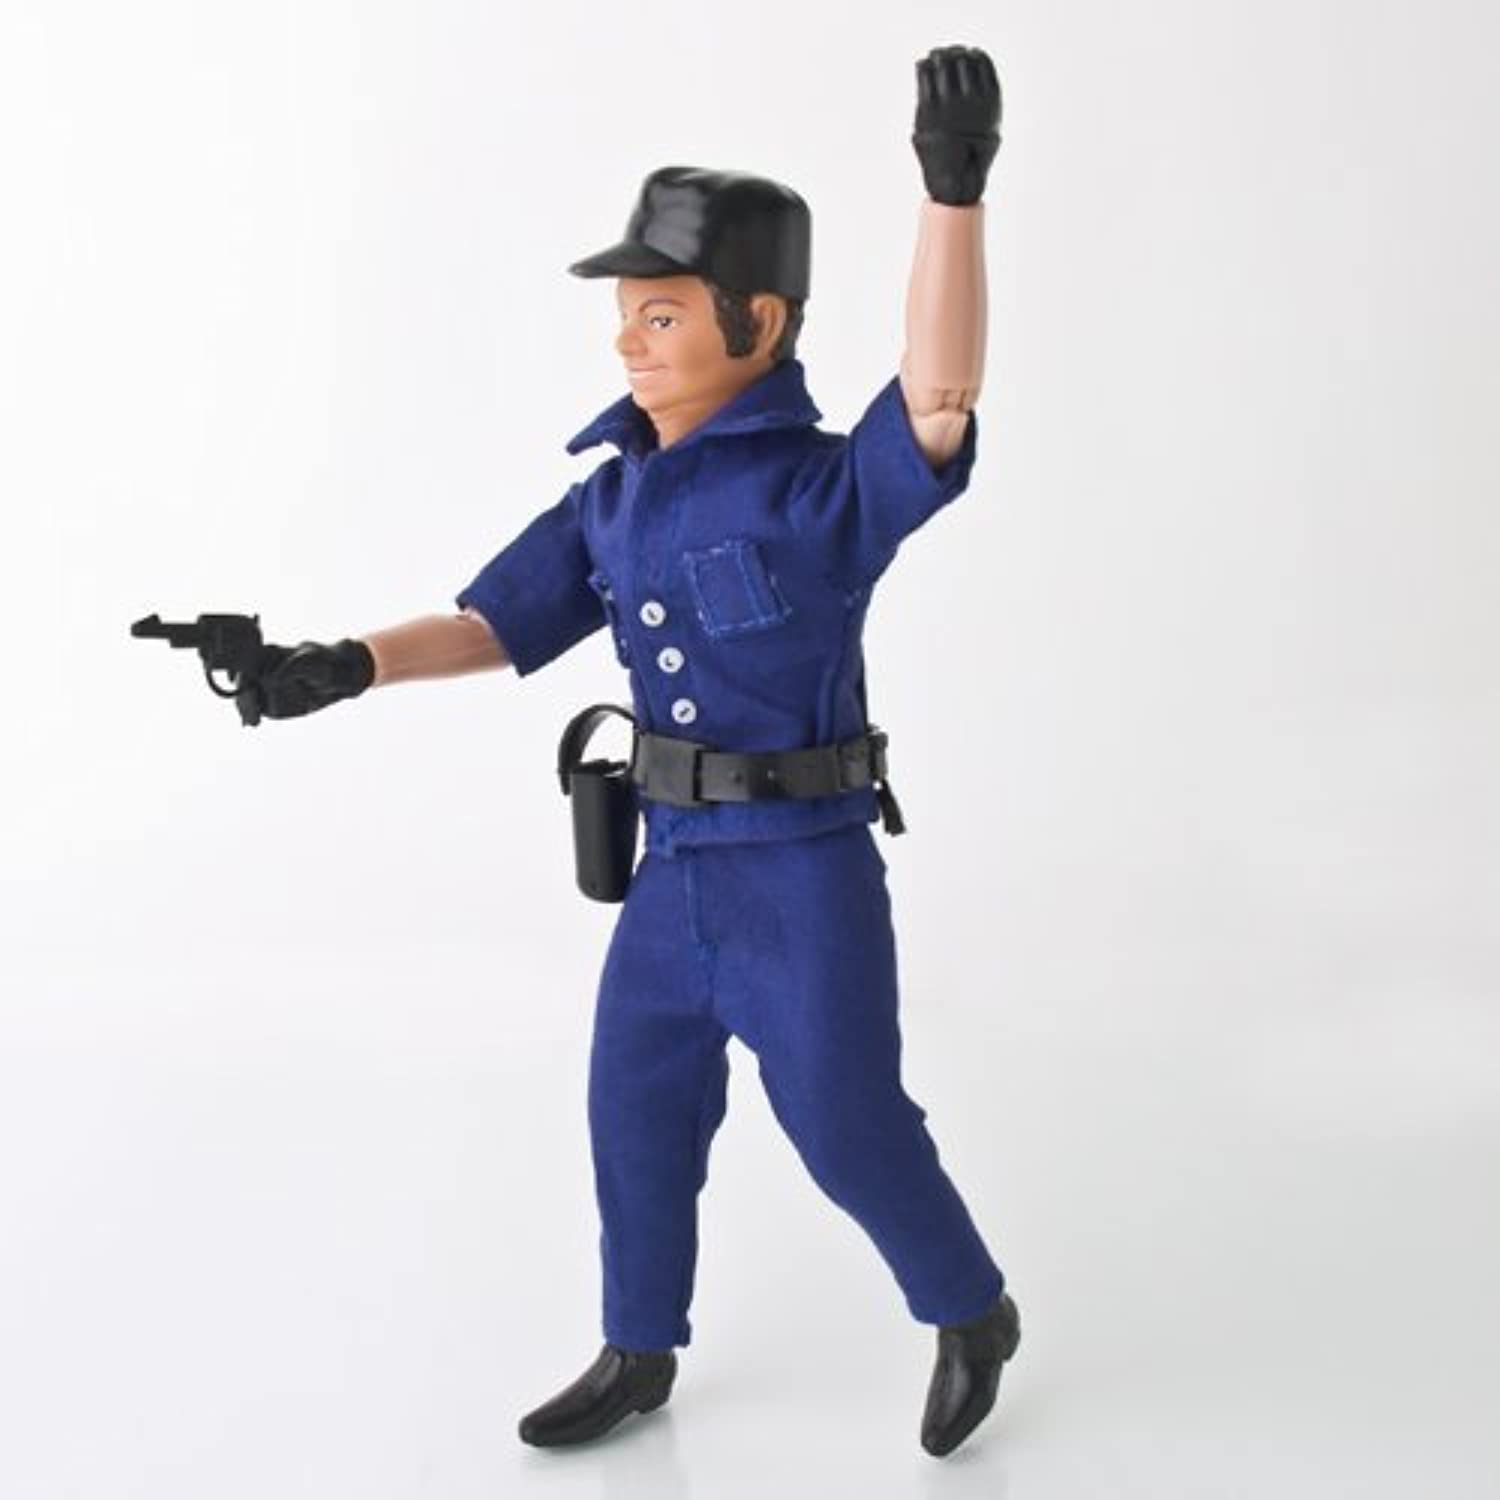 Wrestling Police Officer Action Figure by Figures Toy Company